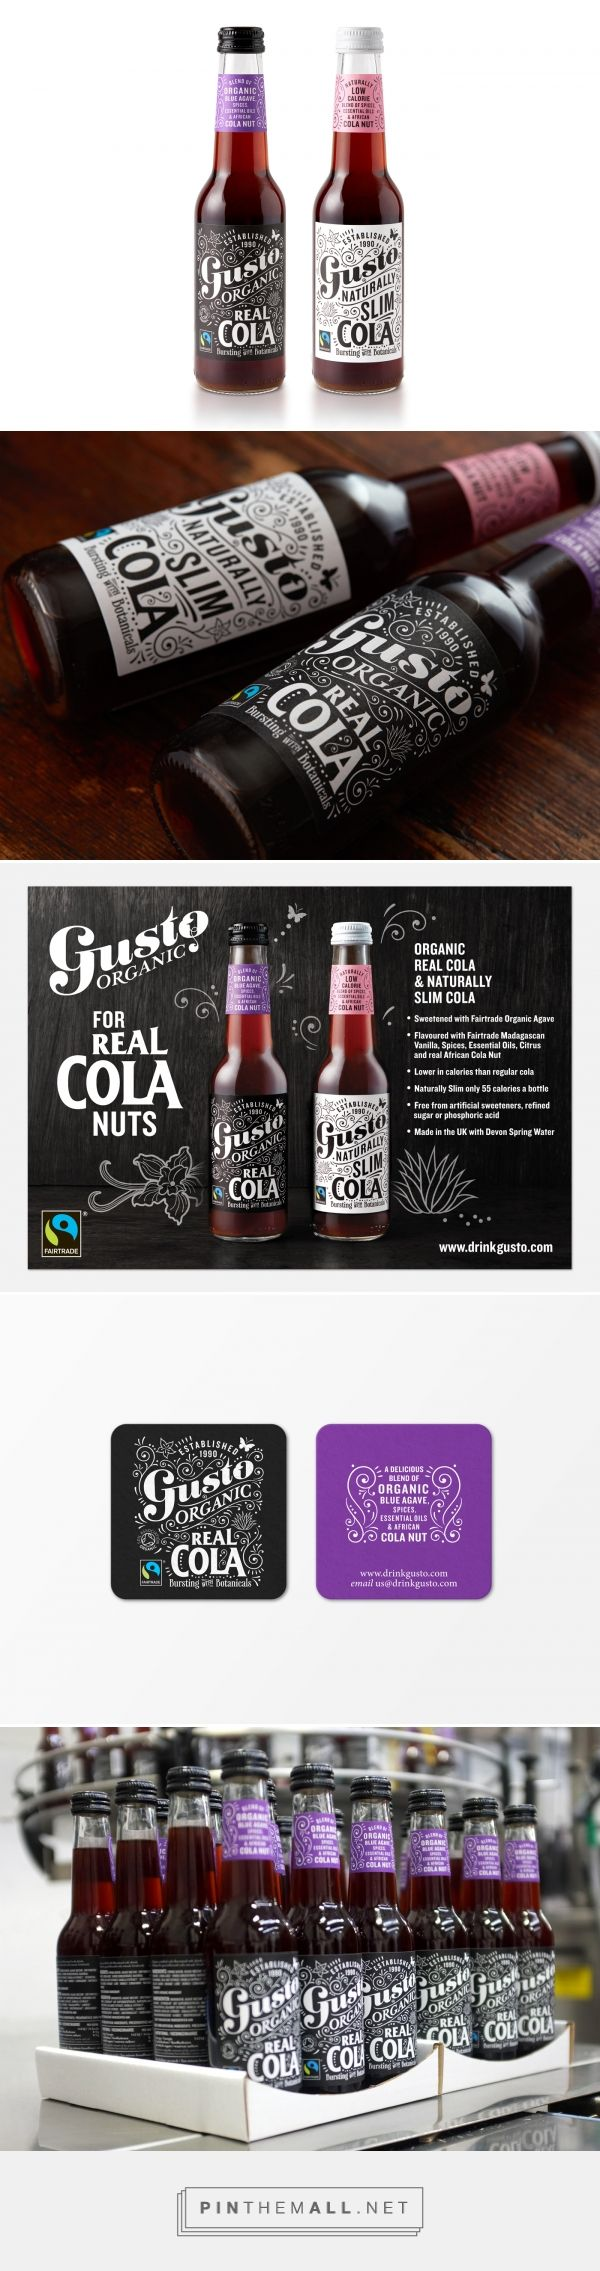 Gusto Organic Cola packaging design by Q&A Studio - http://www.packagingoftheworld.com/2017/10/gusto-organic-colas.html